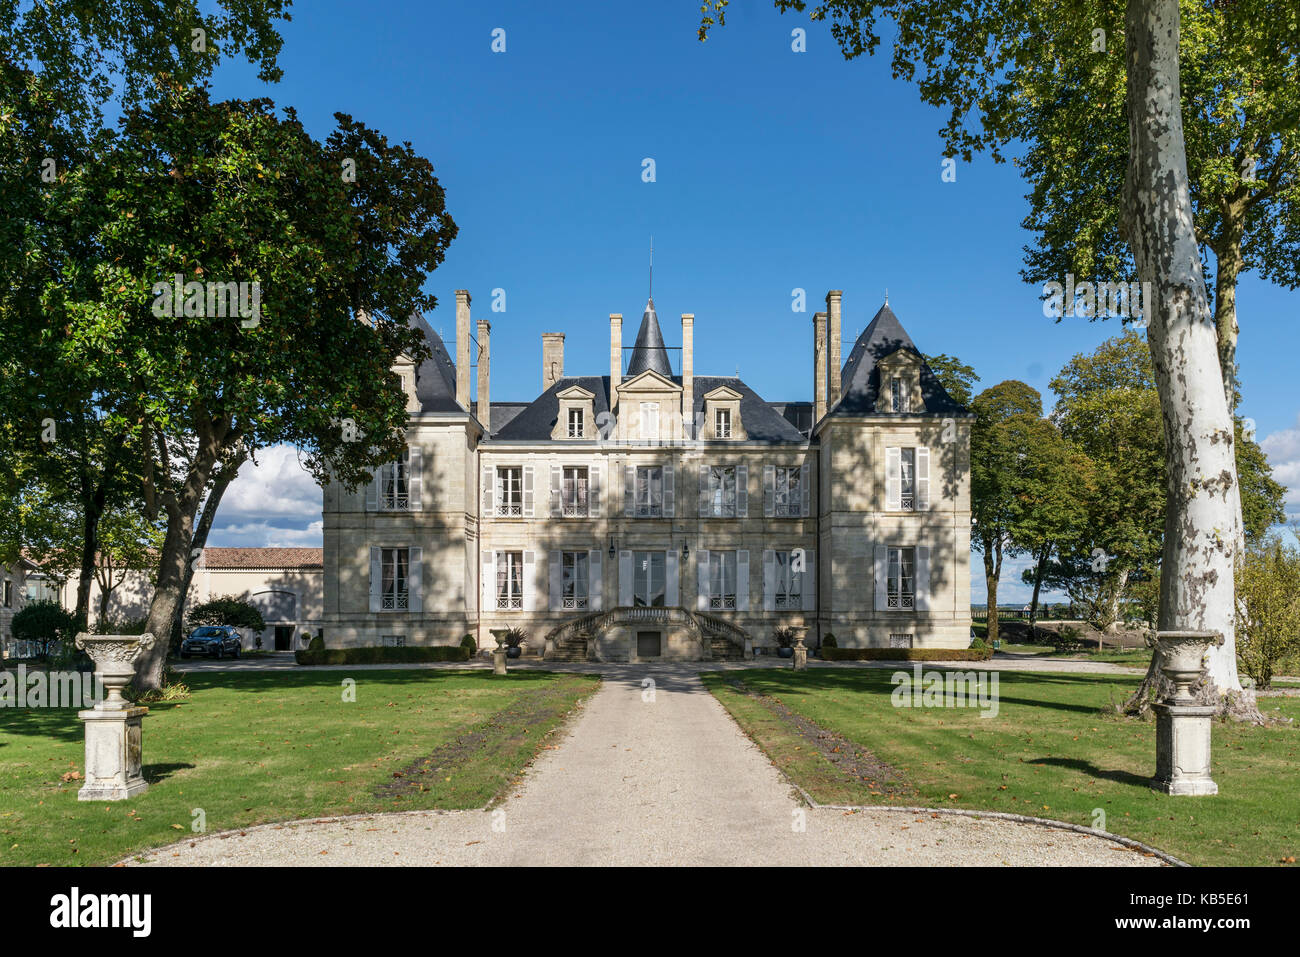 Chateau Latour, vineyards in Medoc, Bordeaux, Gironde, Aquitaine, France, Europe, - Stock Image